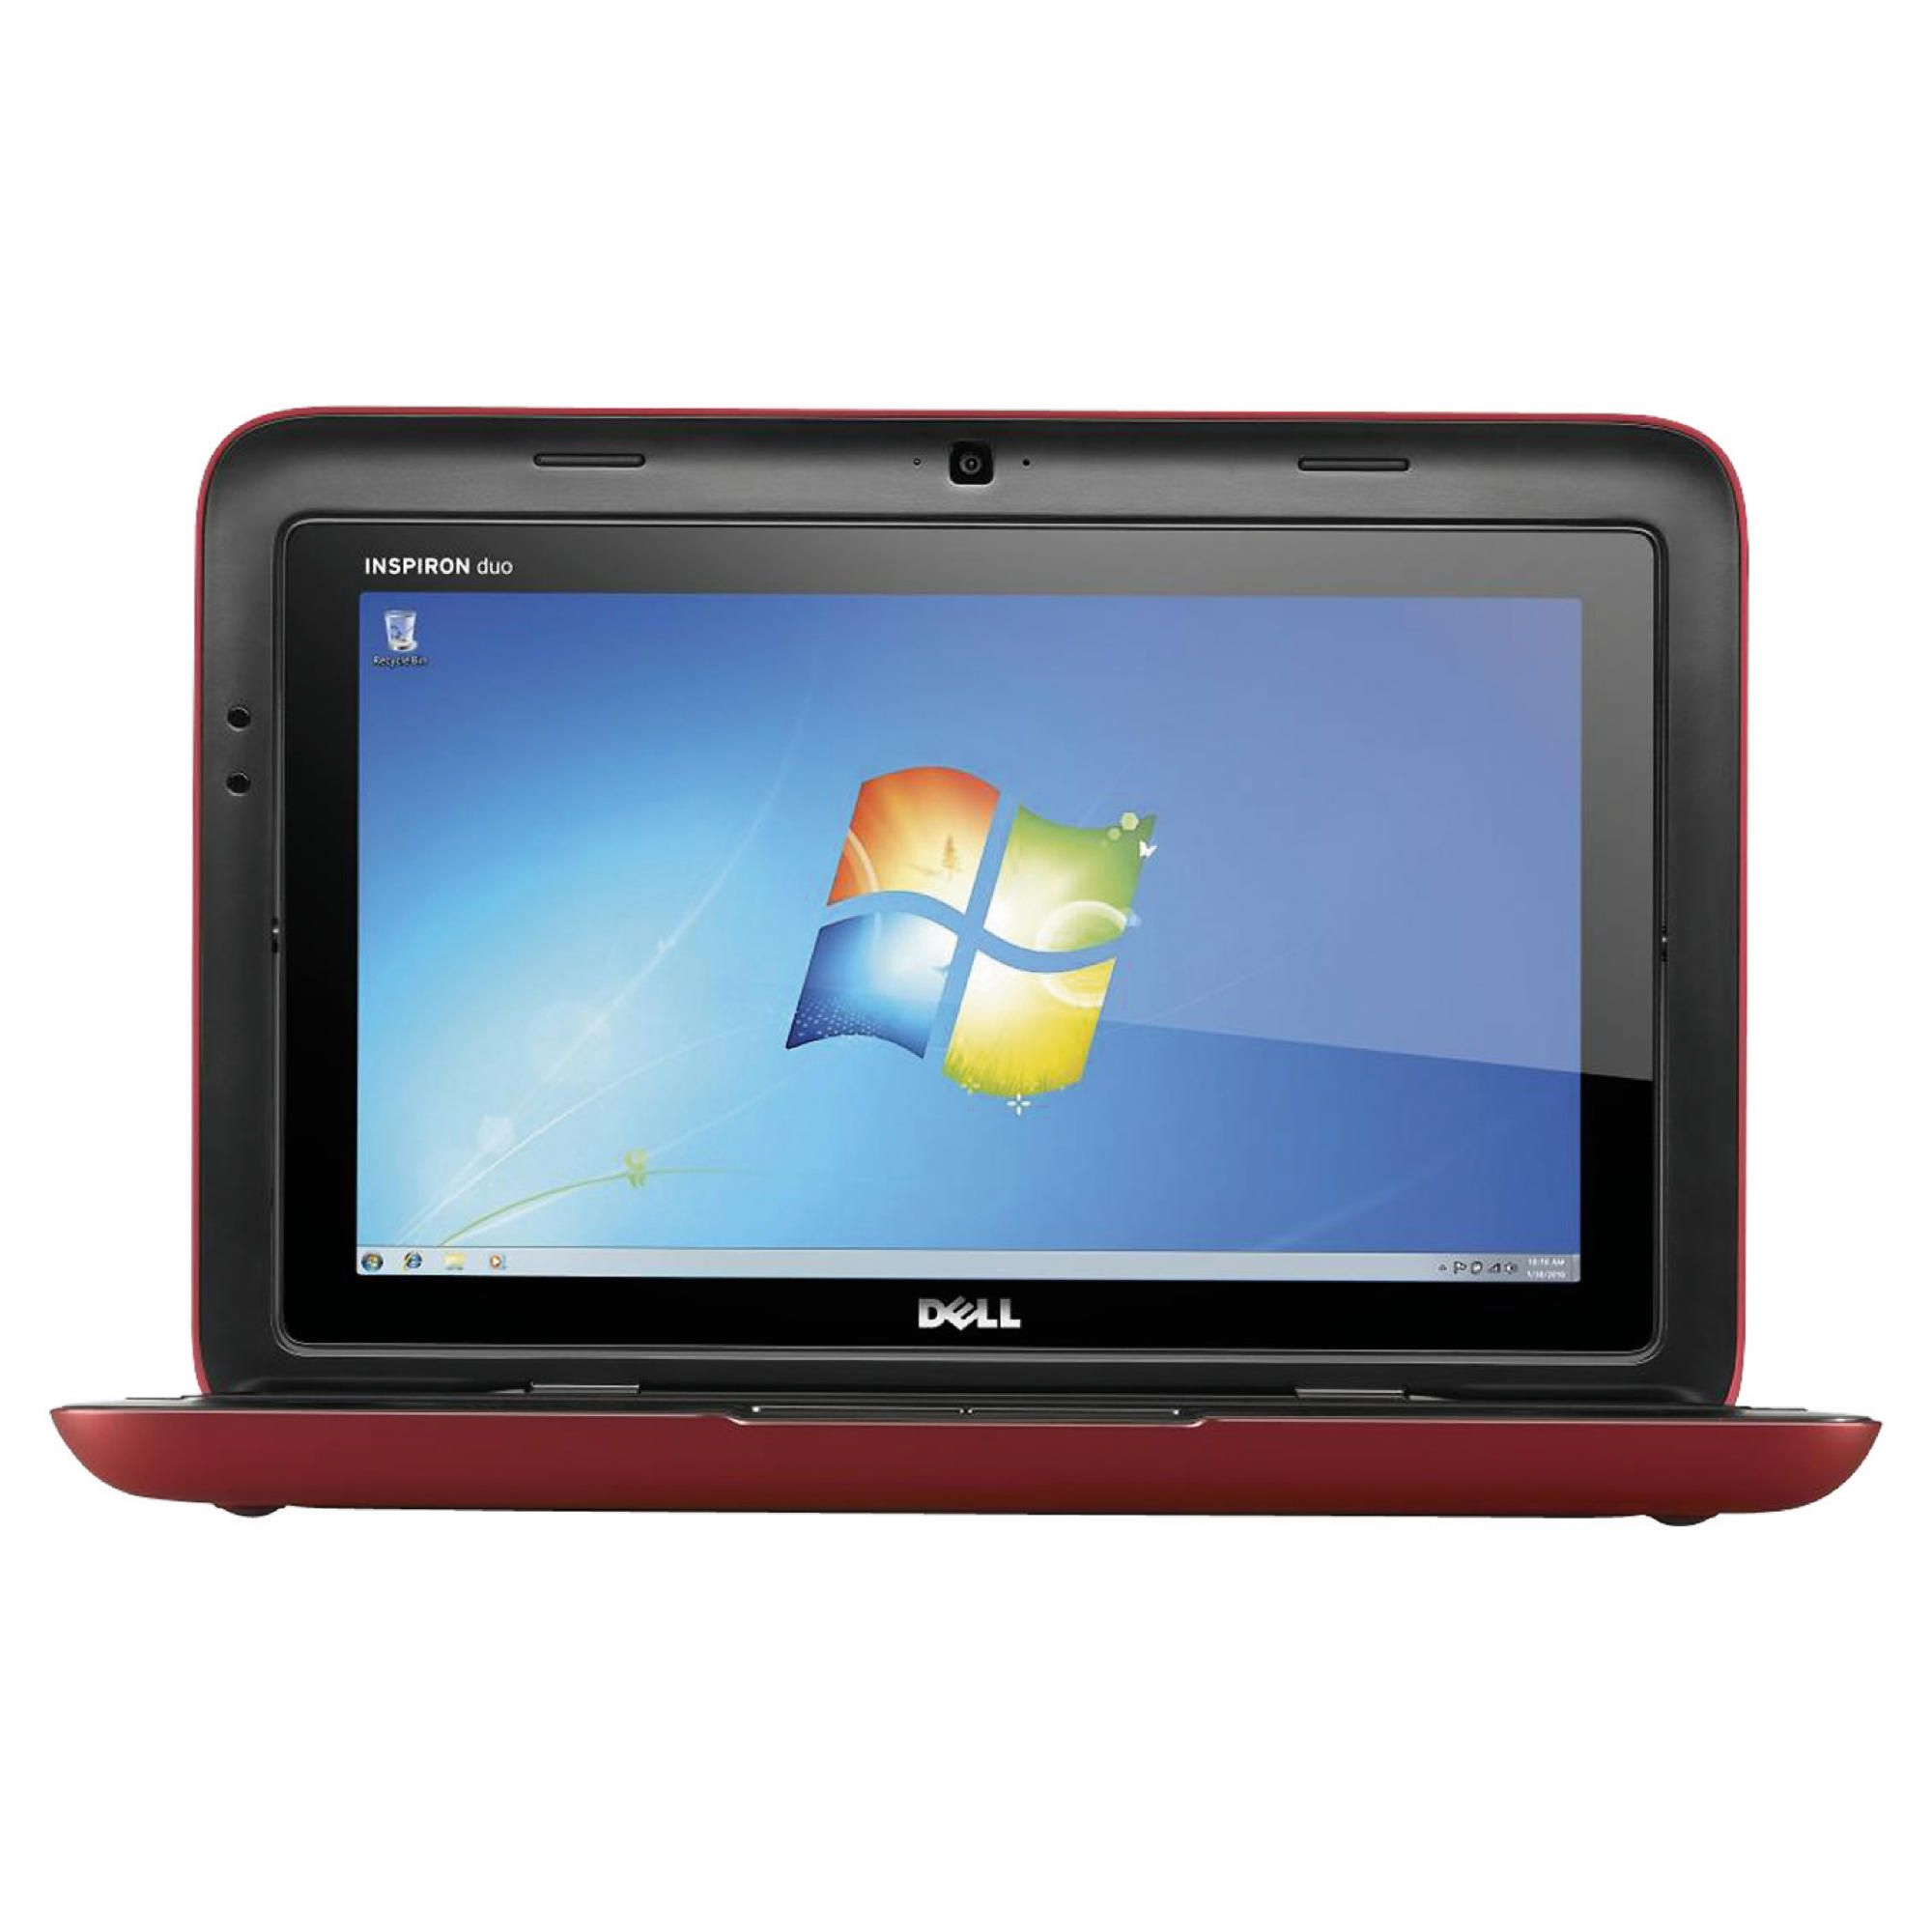 Dell Inspiron Duo Netbook (Intel Atom, 2GB, 320GB, 10.0'' Display) Red at Tesco Direct